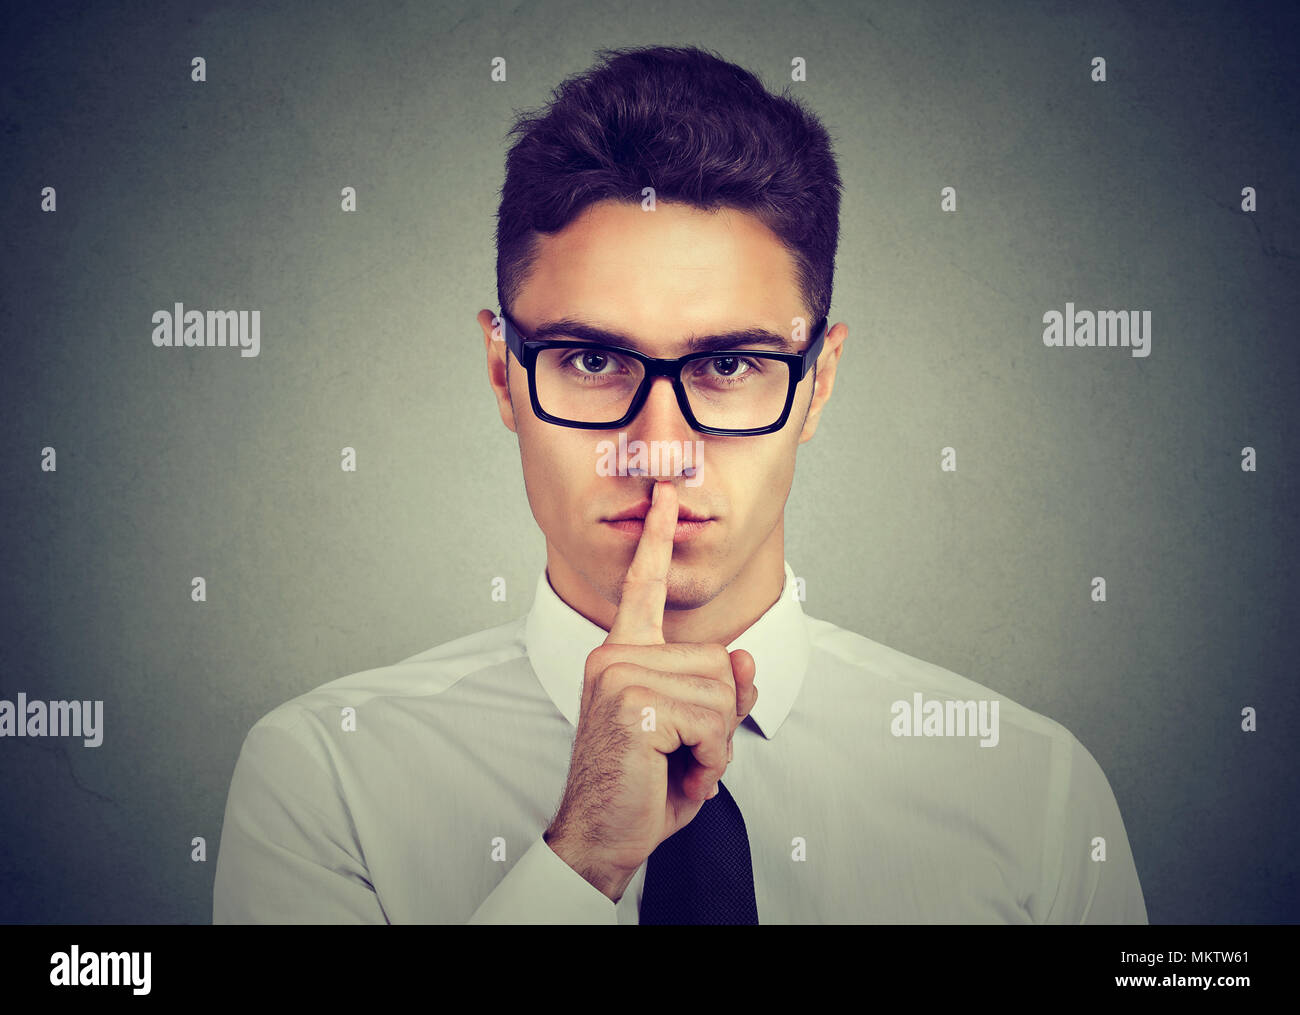 Keep my secret. Businessman holding finger on lips looking at camera standing against gray background - Stock Image